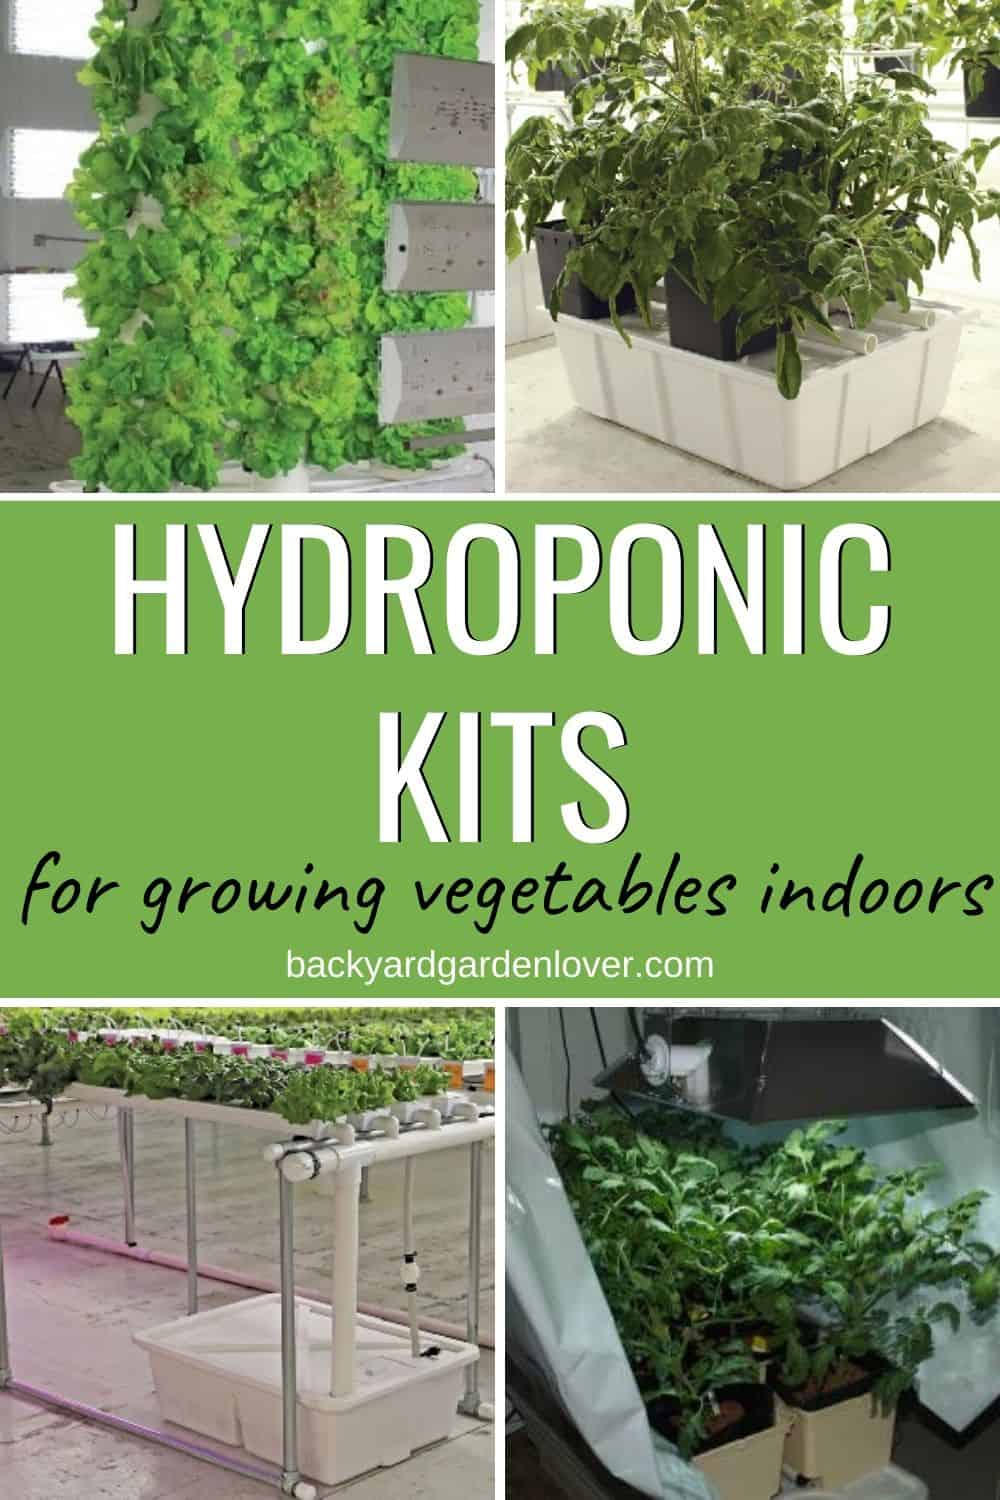 Hydroponic kits for growing vegetables indoors